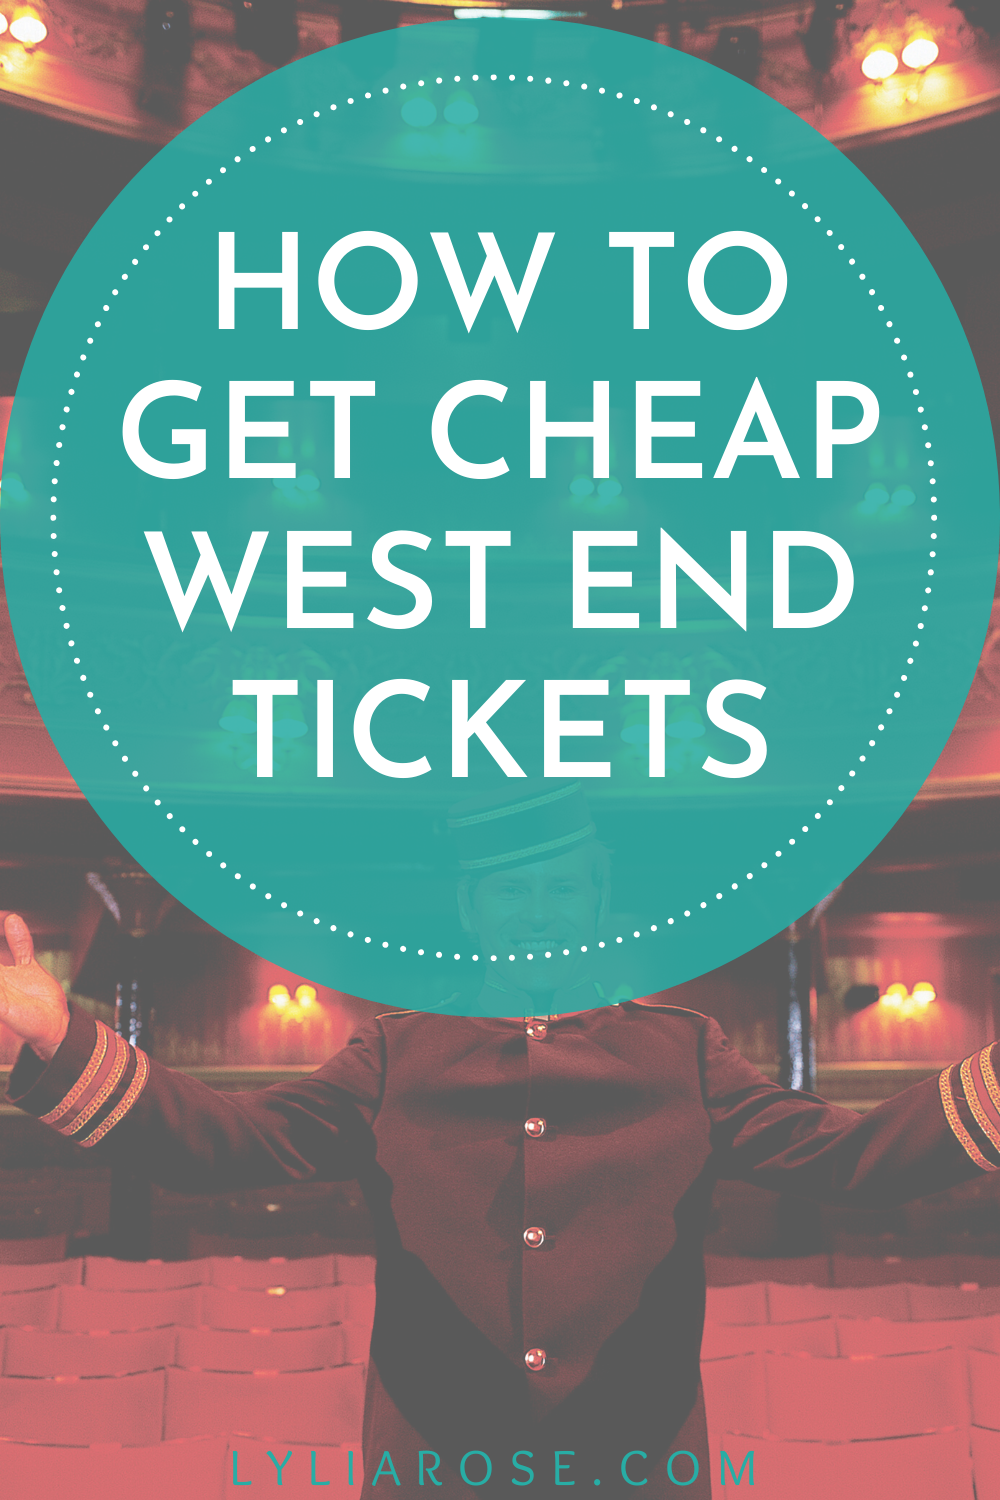 How to get cheap West End tickets (2)